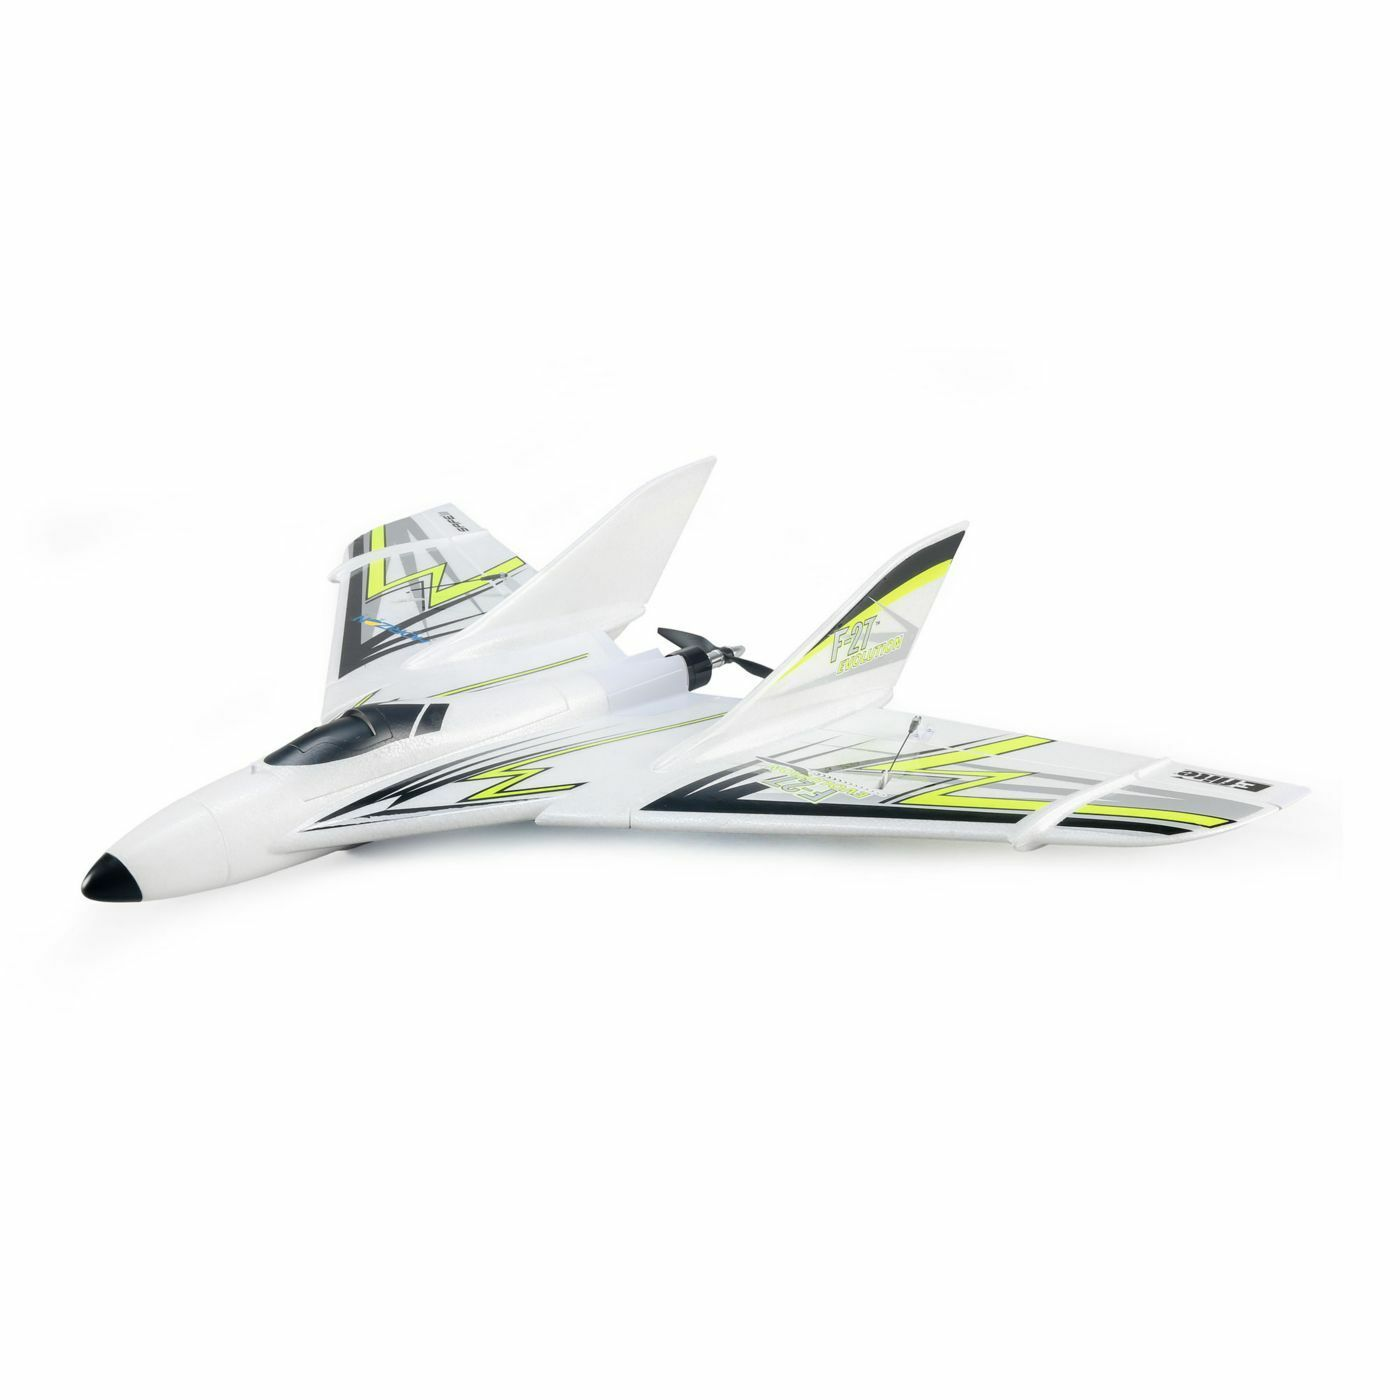 Horizon Hobby E-FLITE ® f-27  EVOLUTION BNF BASIC CON as3x e Safe-Select  NUOVO  si affrettò a vedere